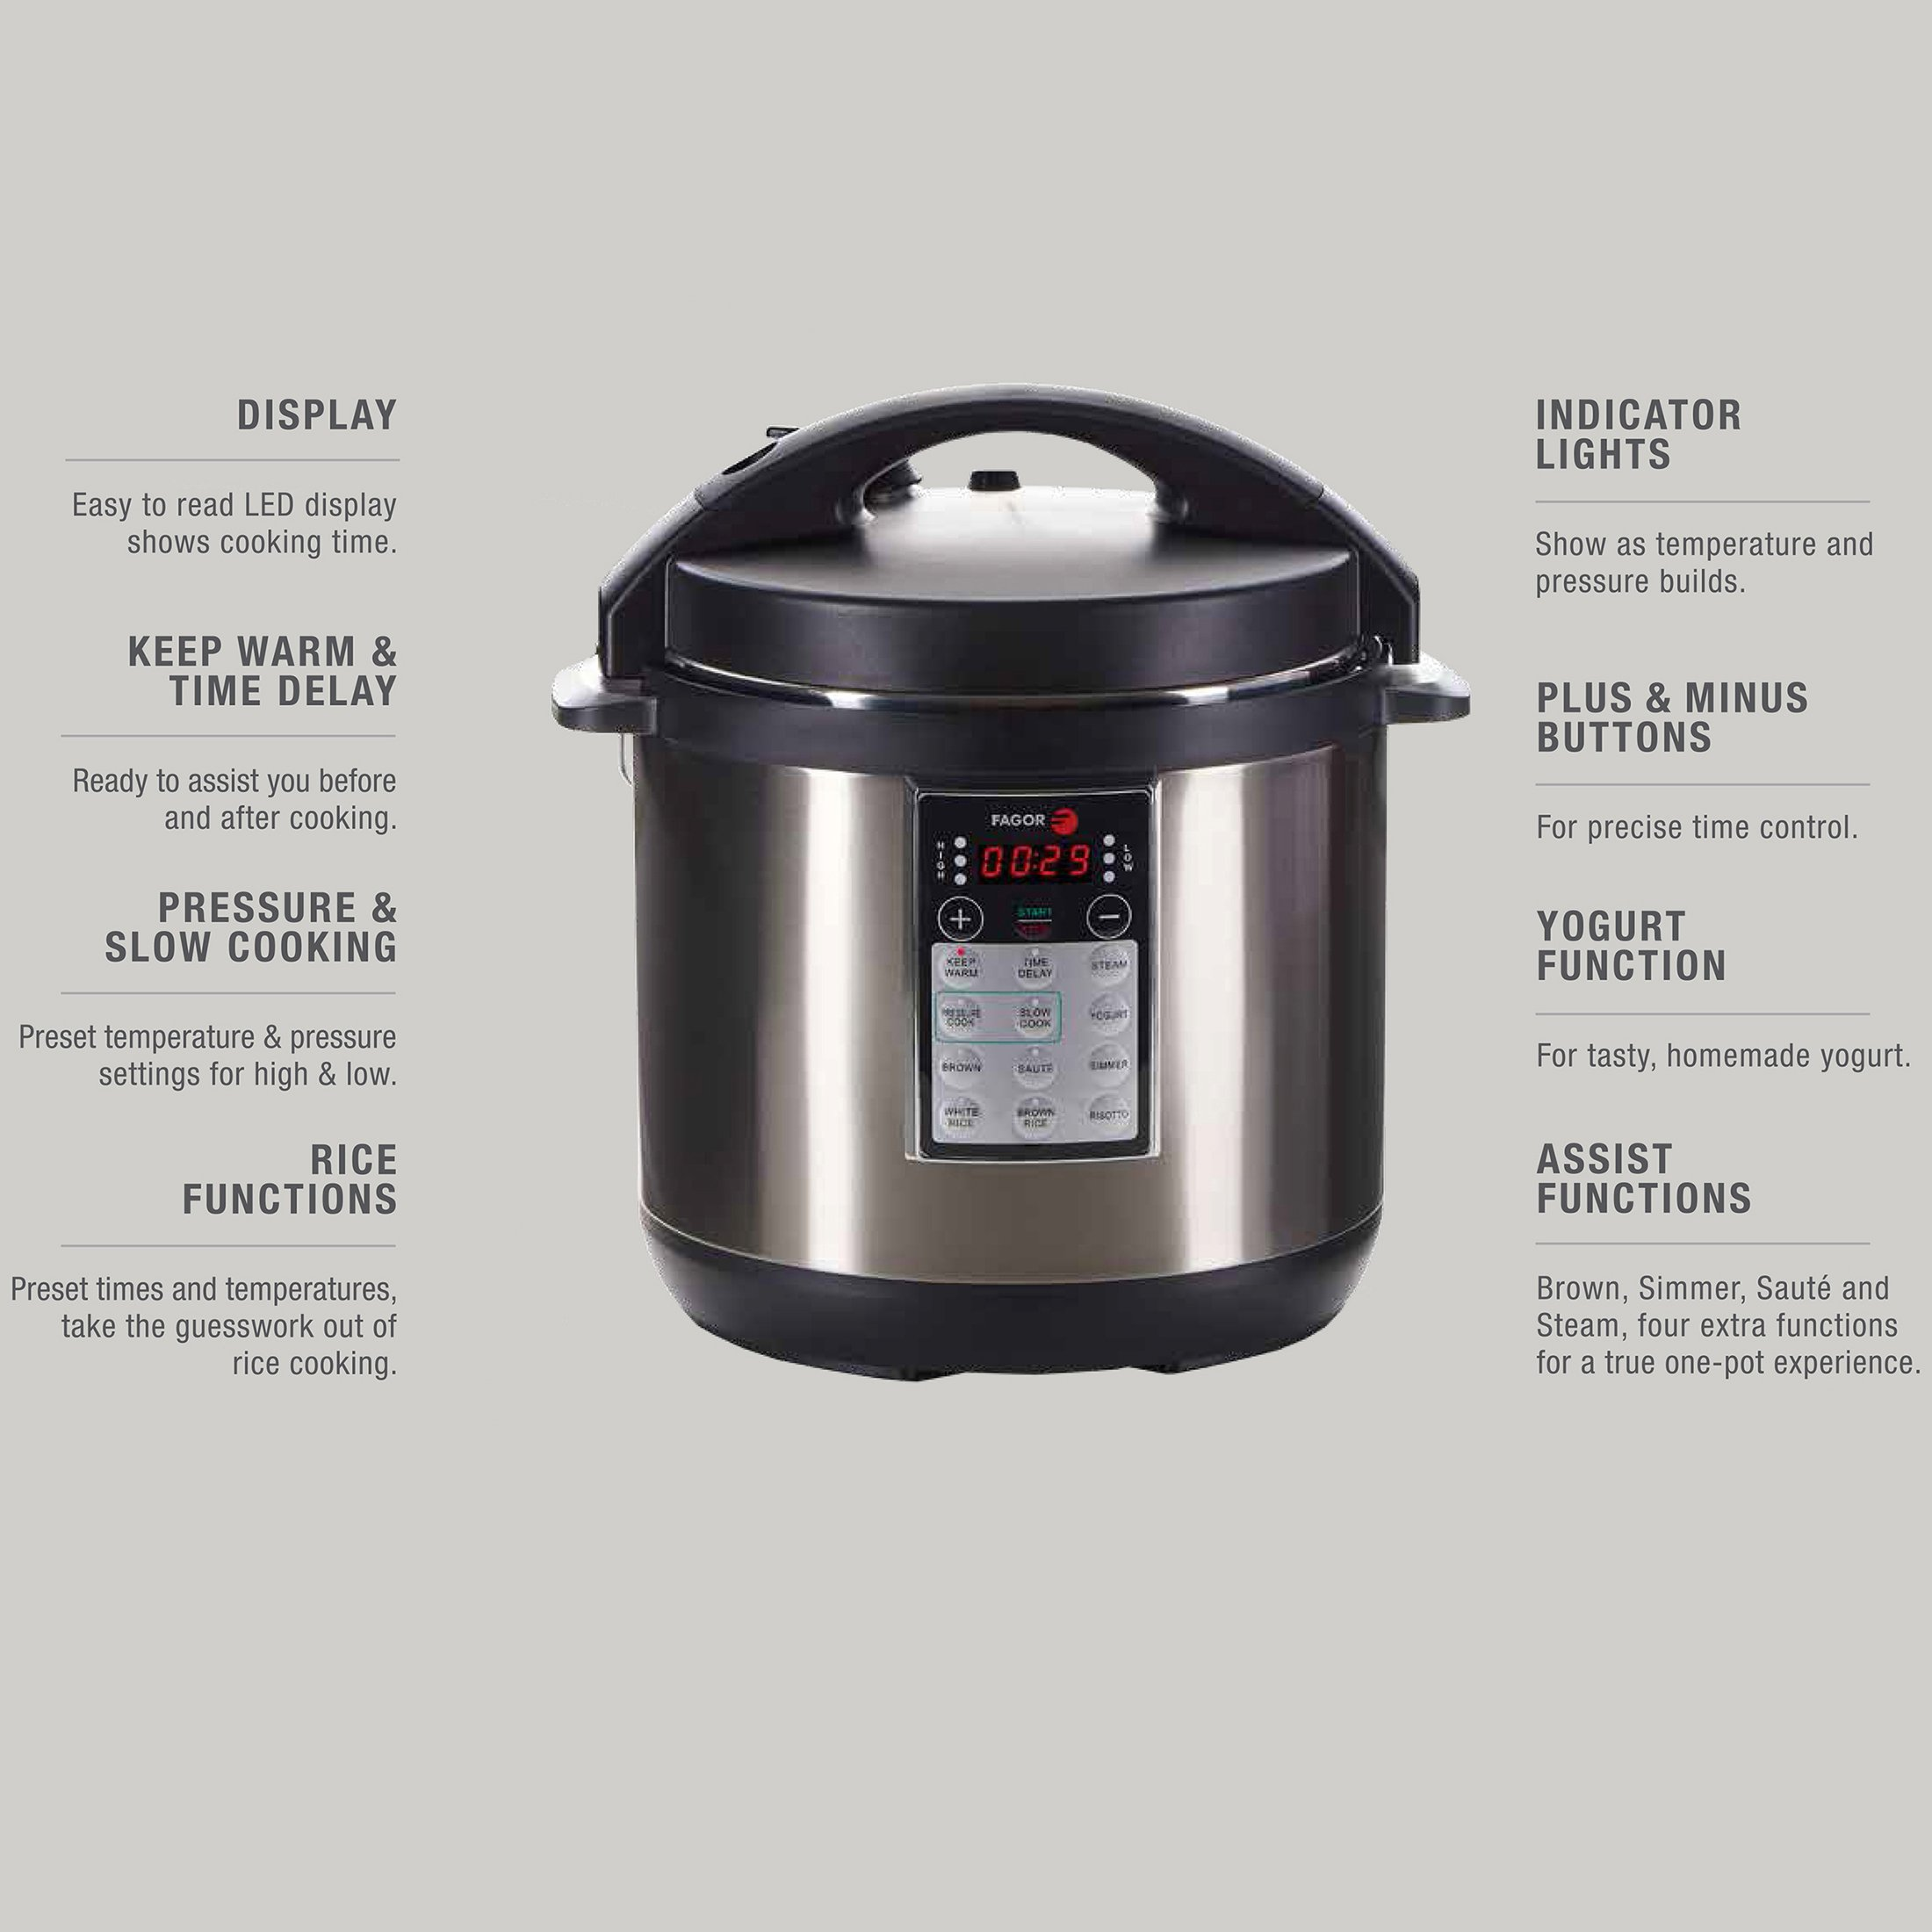 buyr.com - Fagor LUX Multi-Cooker, 6 quart, Electric Pressure Cooker, Slow  Cooker, Rice Cooker, Yogurt Maker and more, Silver - 670041880